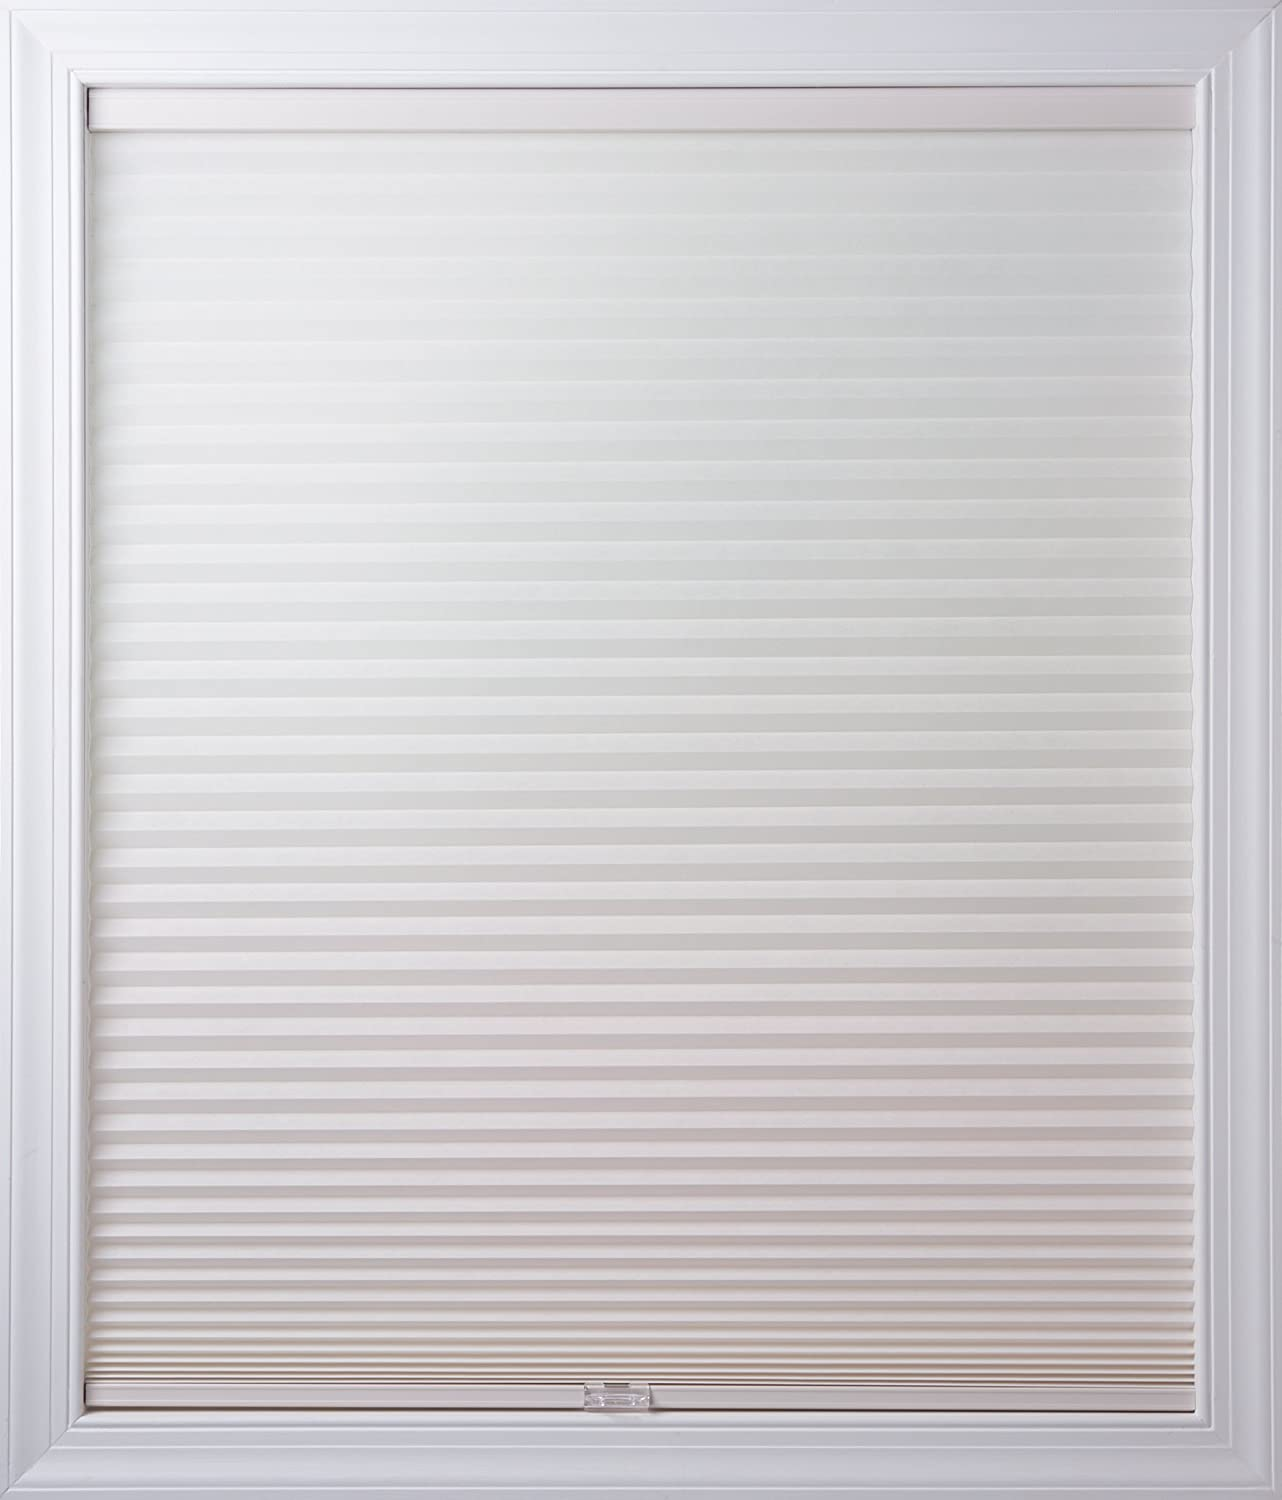 New Age Sacramento Mall Blinds Light Filtering Inside Mount Cordless Popular products Cellu Frame